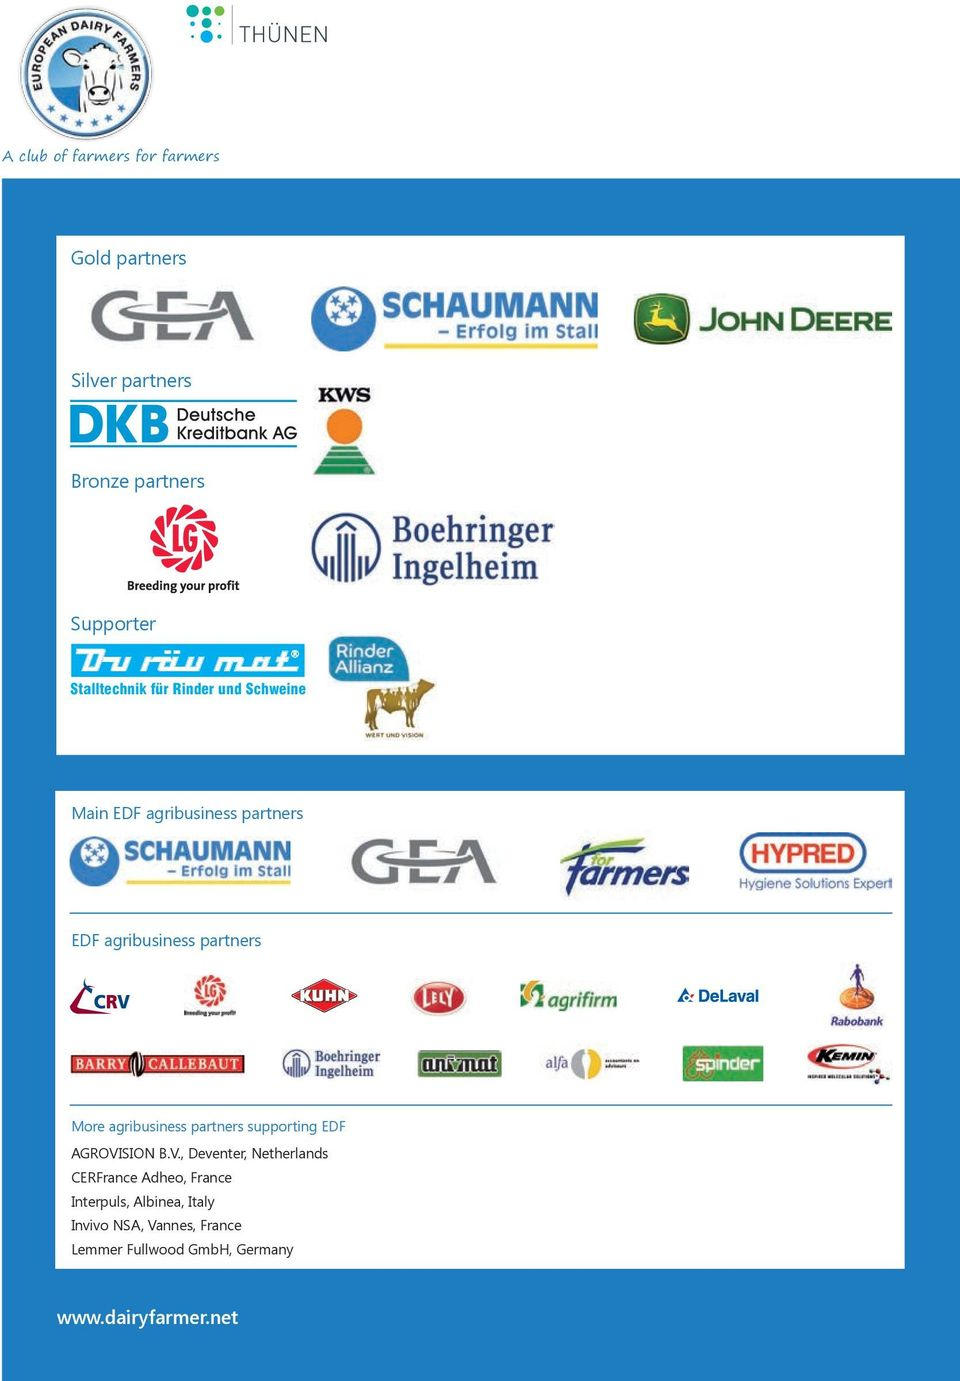 More agribusiness partners supporting EDF AGROVI